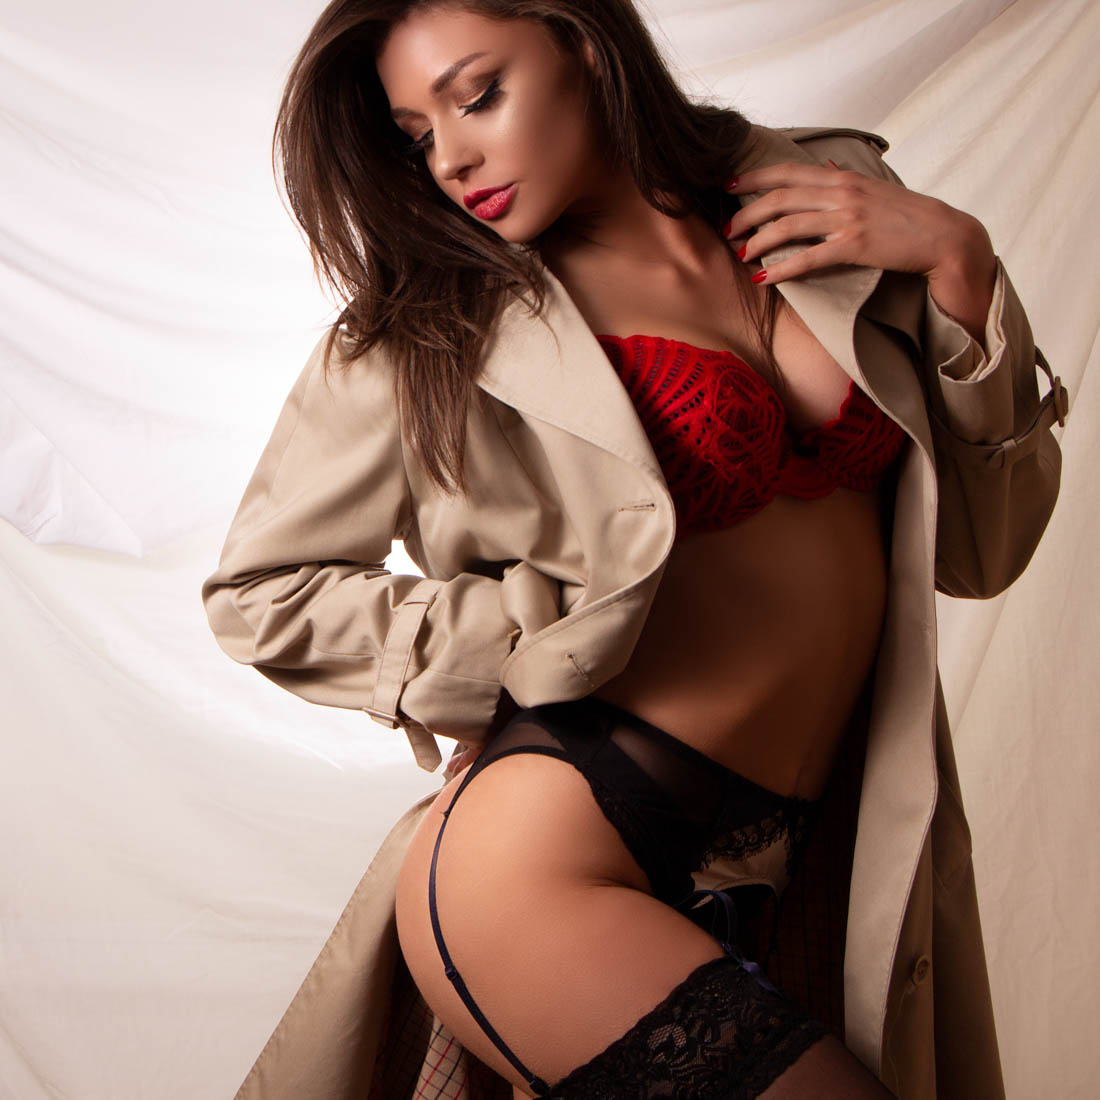 Brown hair woman wearing a vintage trench coat and red and black lingerie